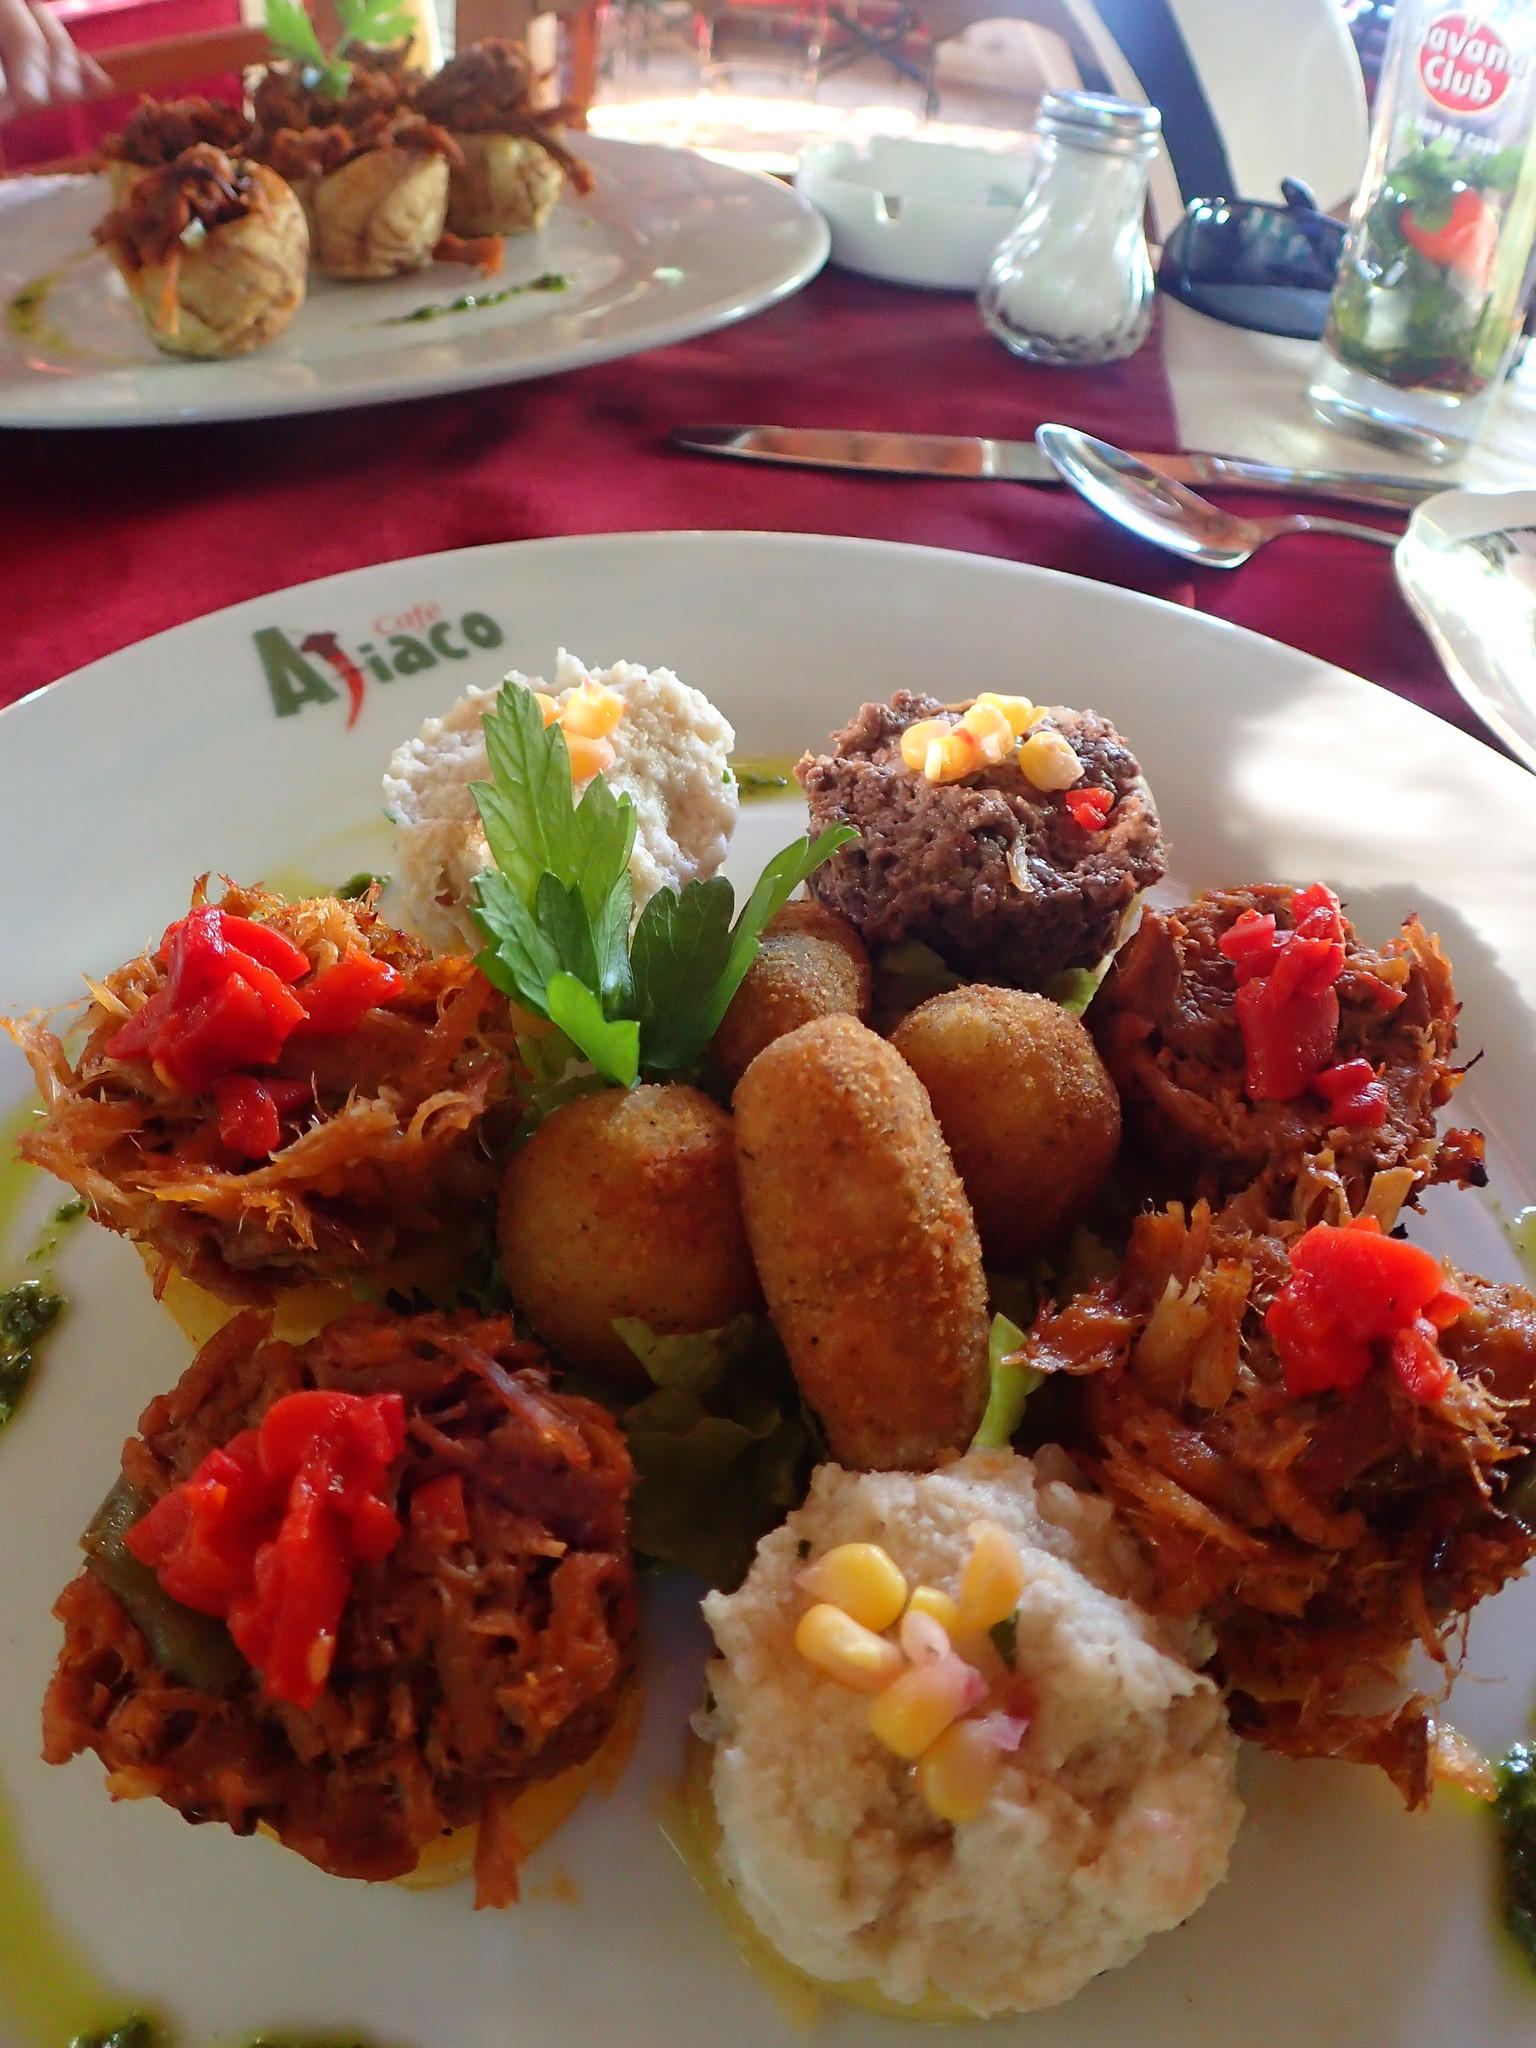 The appetizer sampler platter at Cafe Ajiaco in Cojimar, a seaside town about 15 minutes east of Havana.